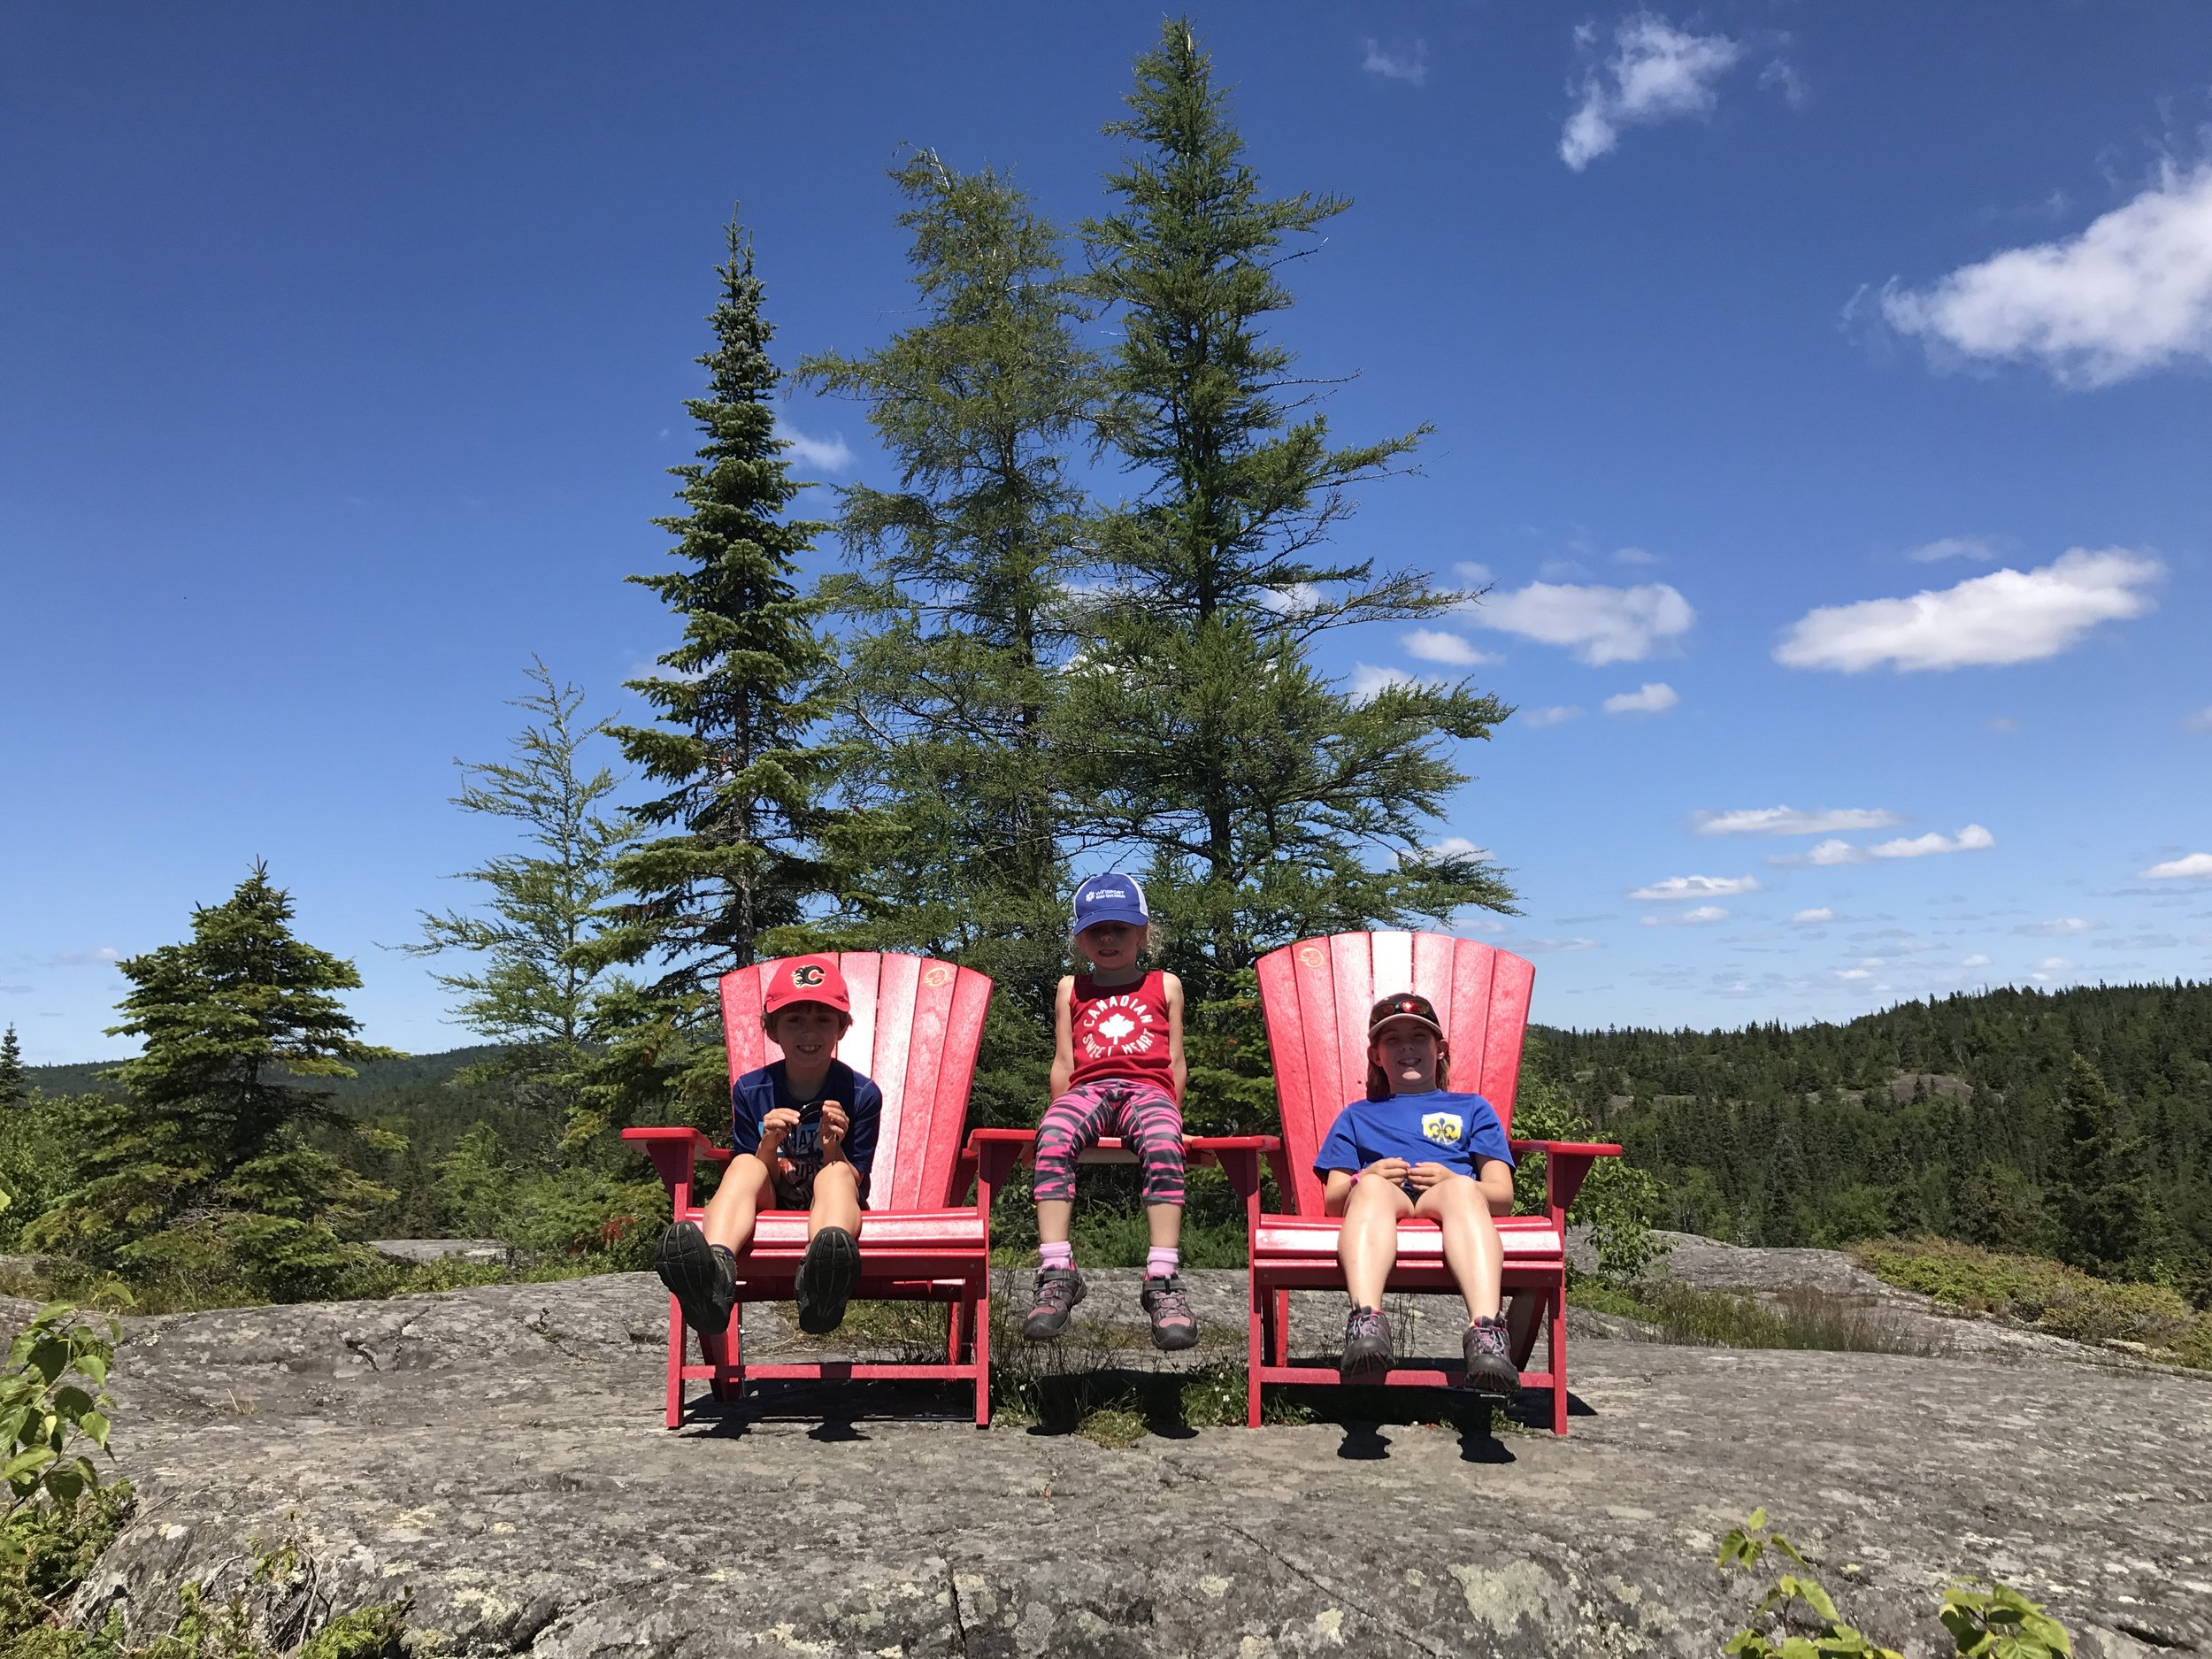 After many kilometres of hiking in search of these chairs, we finally found them in Pukaskwa National Park, Northern Ontario.